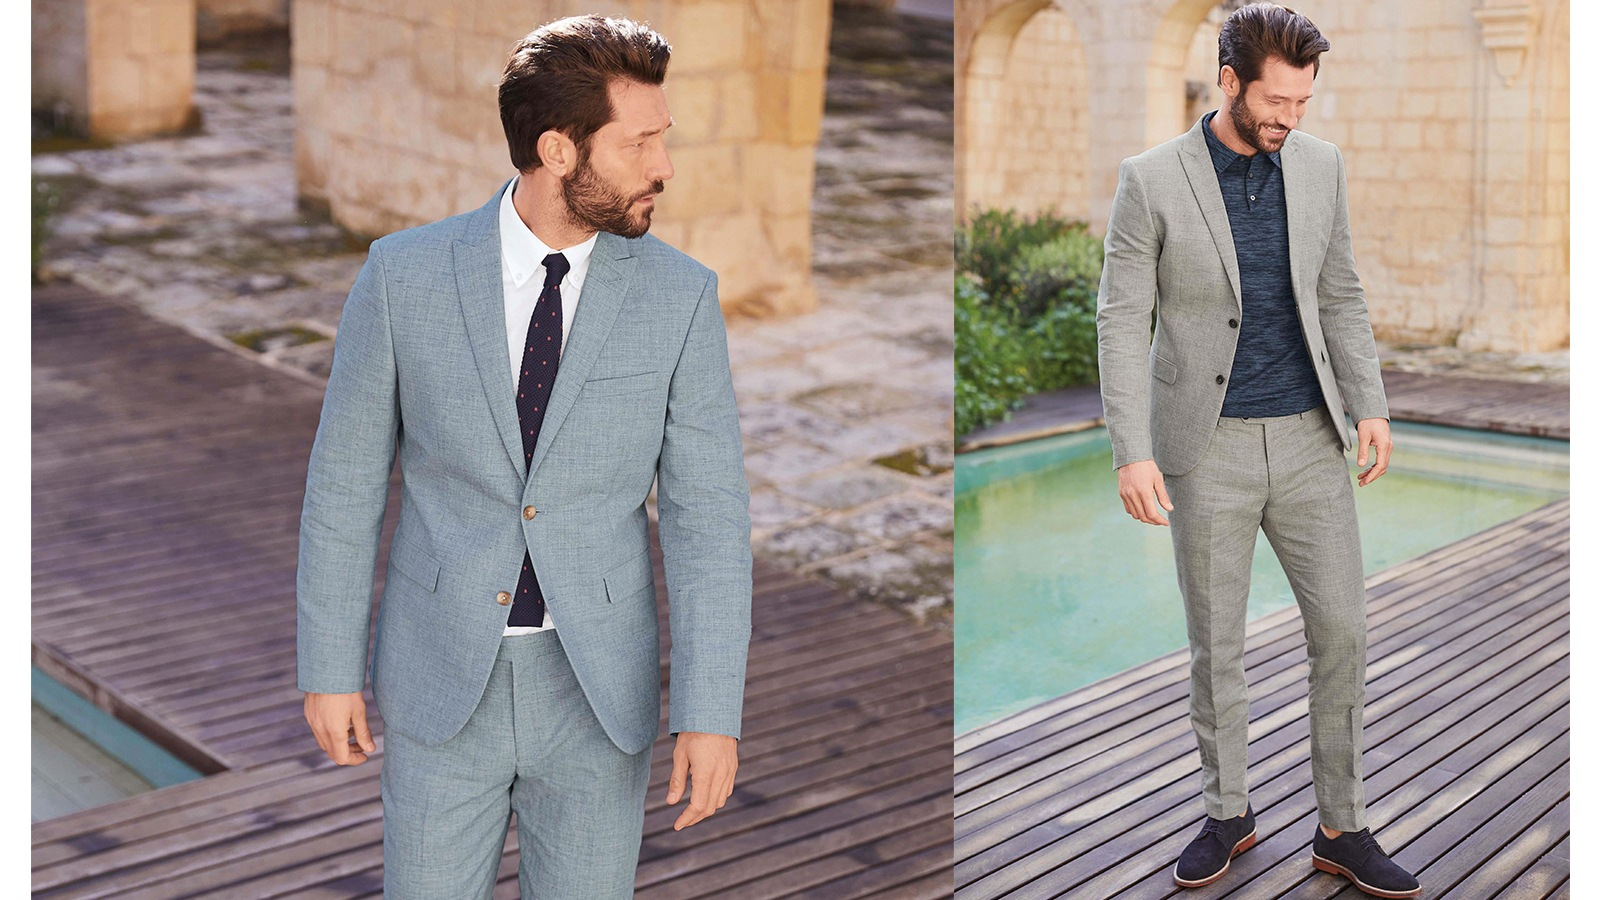 Wedding Guest | Mens Style Stories | Next Official Site